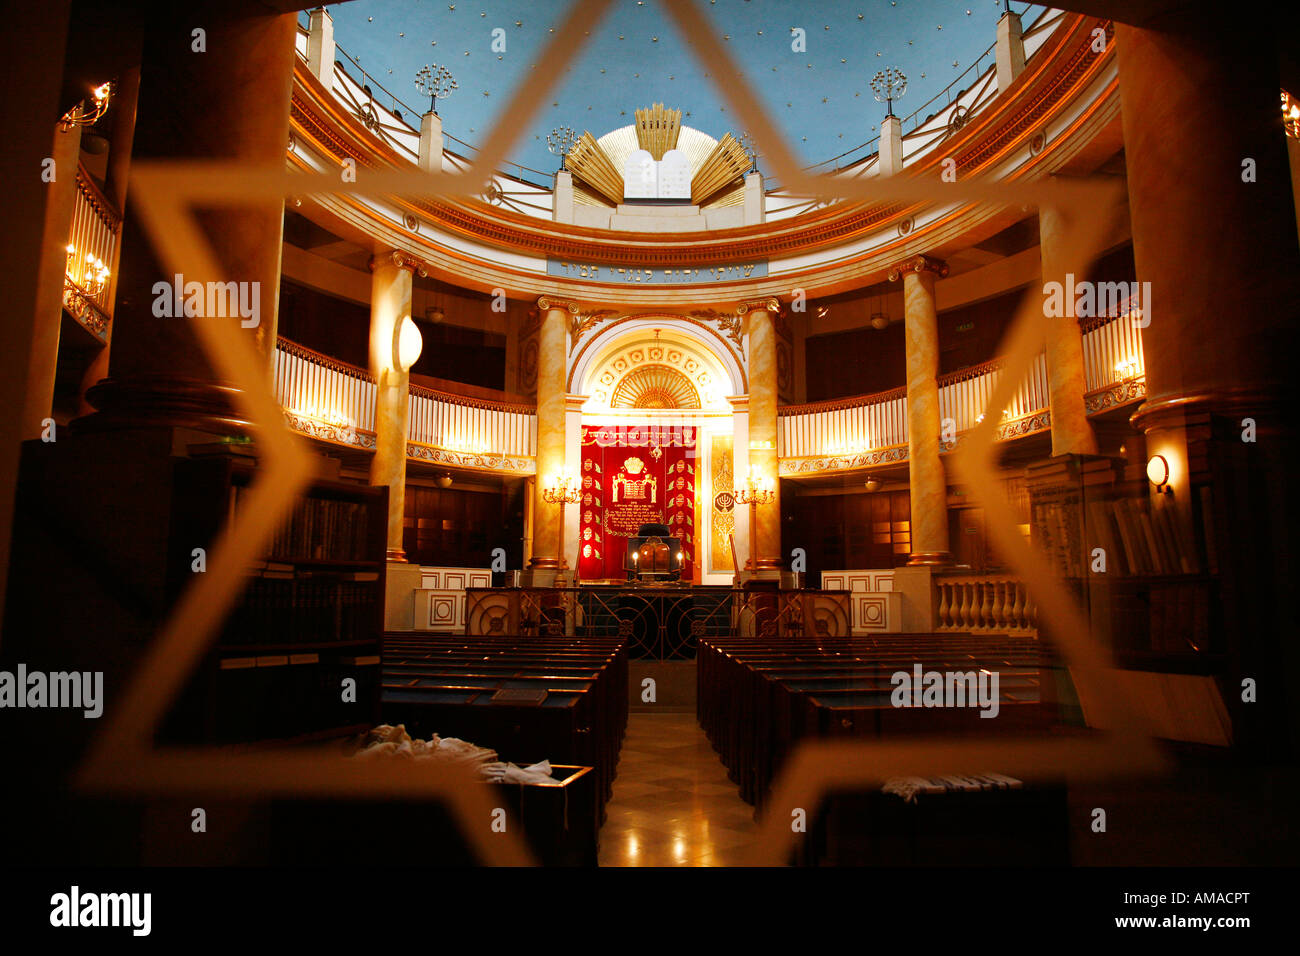 Aug 2008 - The Stadttempel Synagogue Vienna Austria - Stock Image